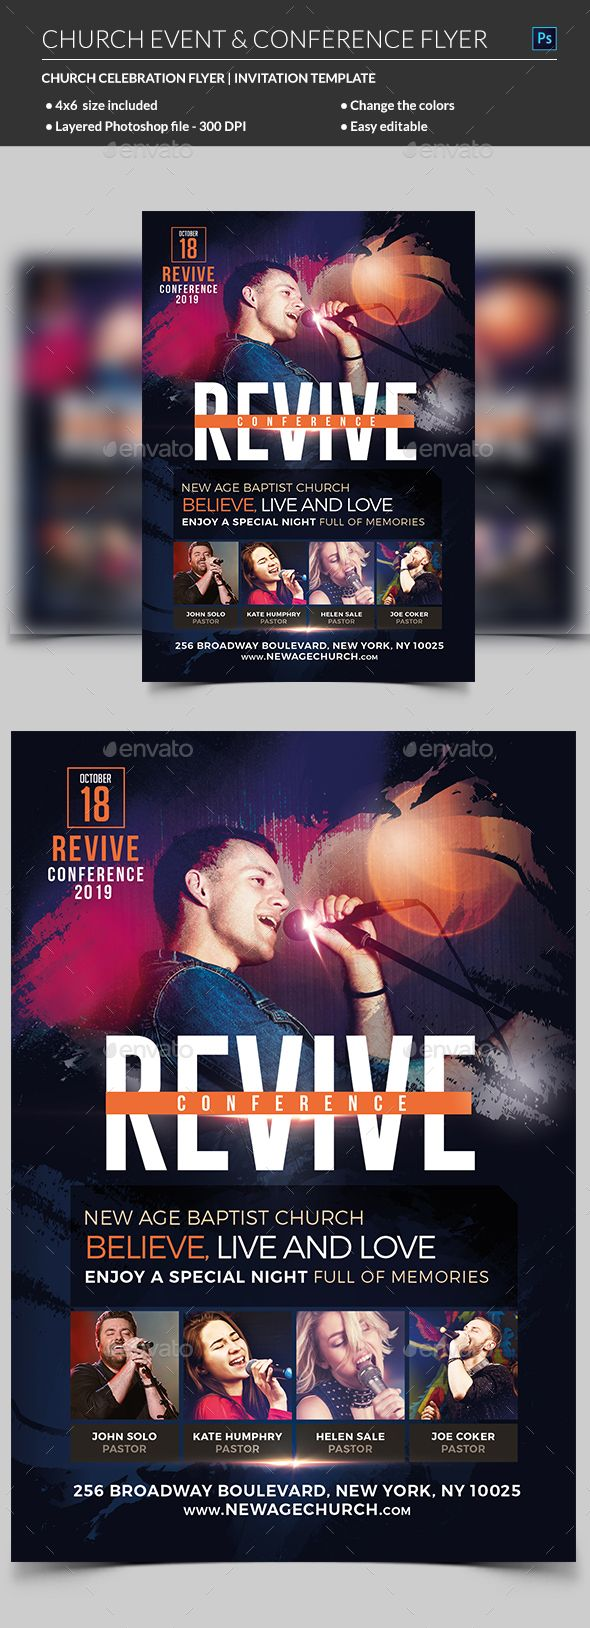 church event or conference flyer template church flyers